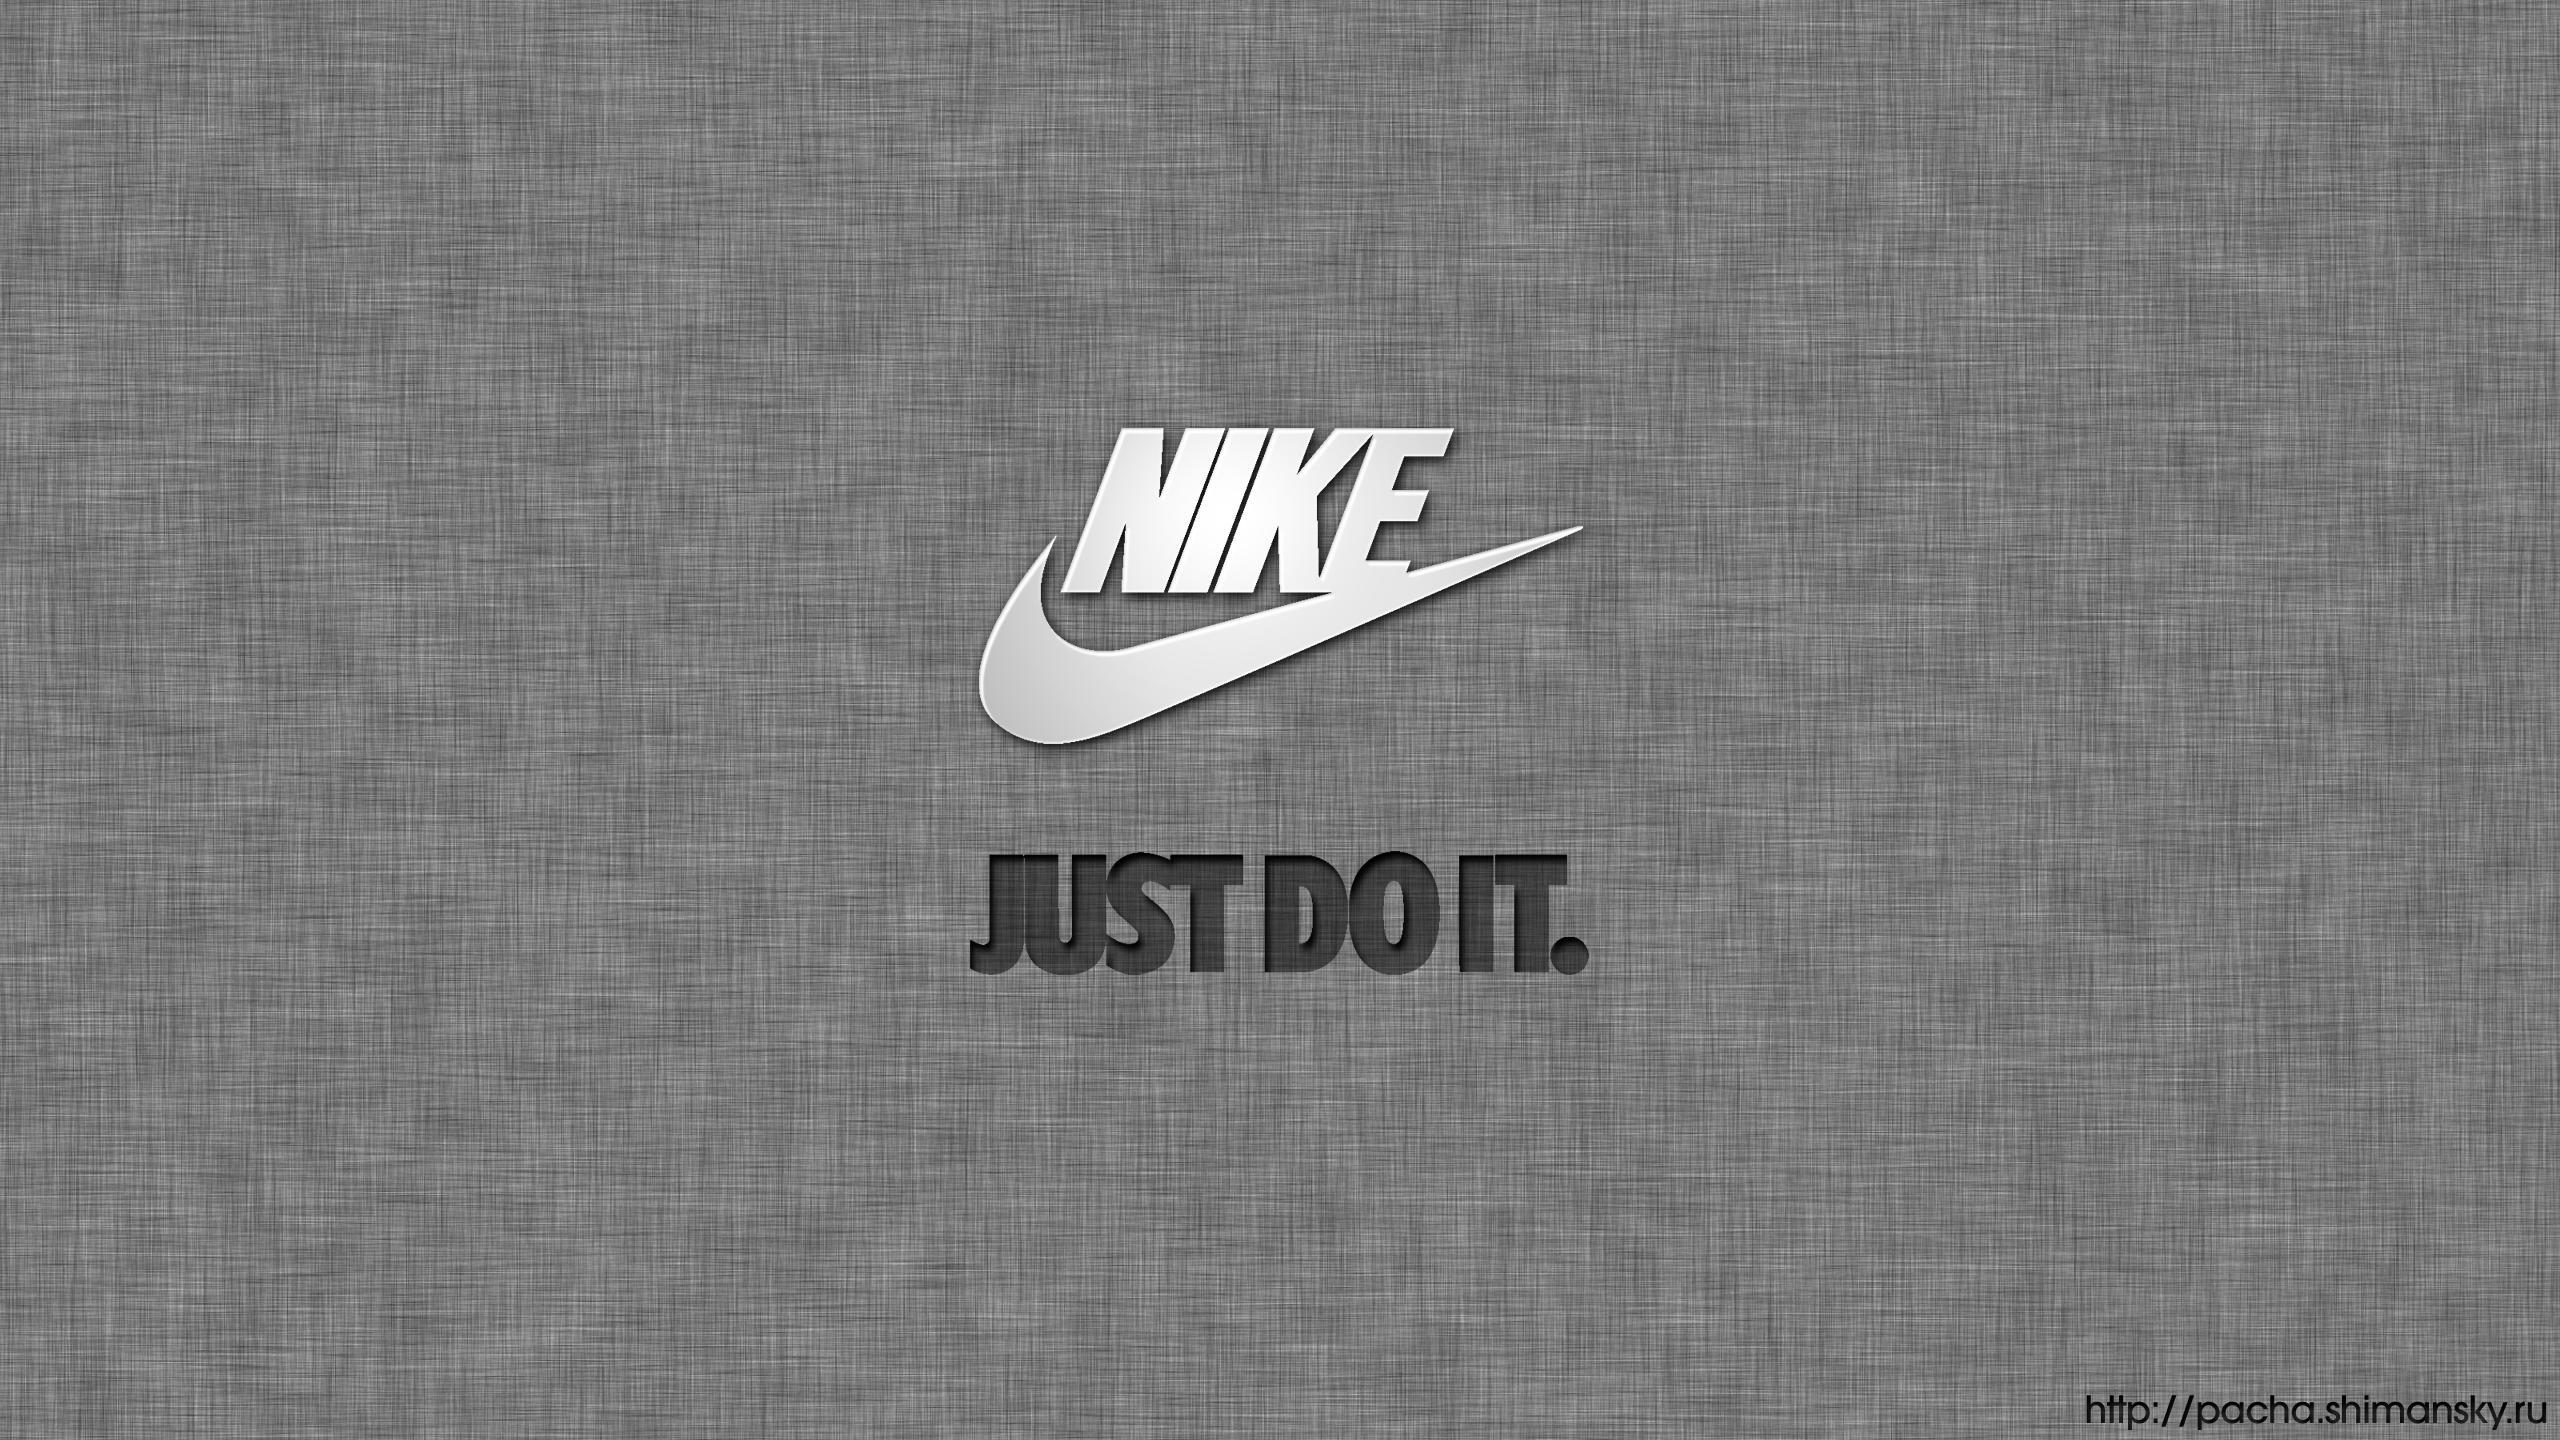 Hd wallpaper nike - Logo Nike Wallpaper Hd 1440x2560px Nike Wallpaper Nike